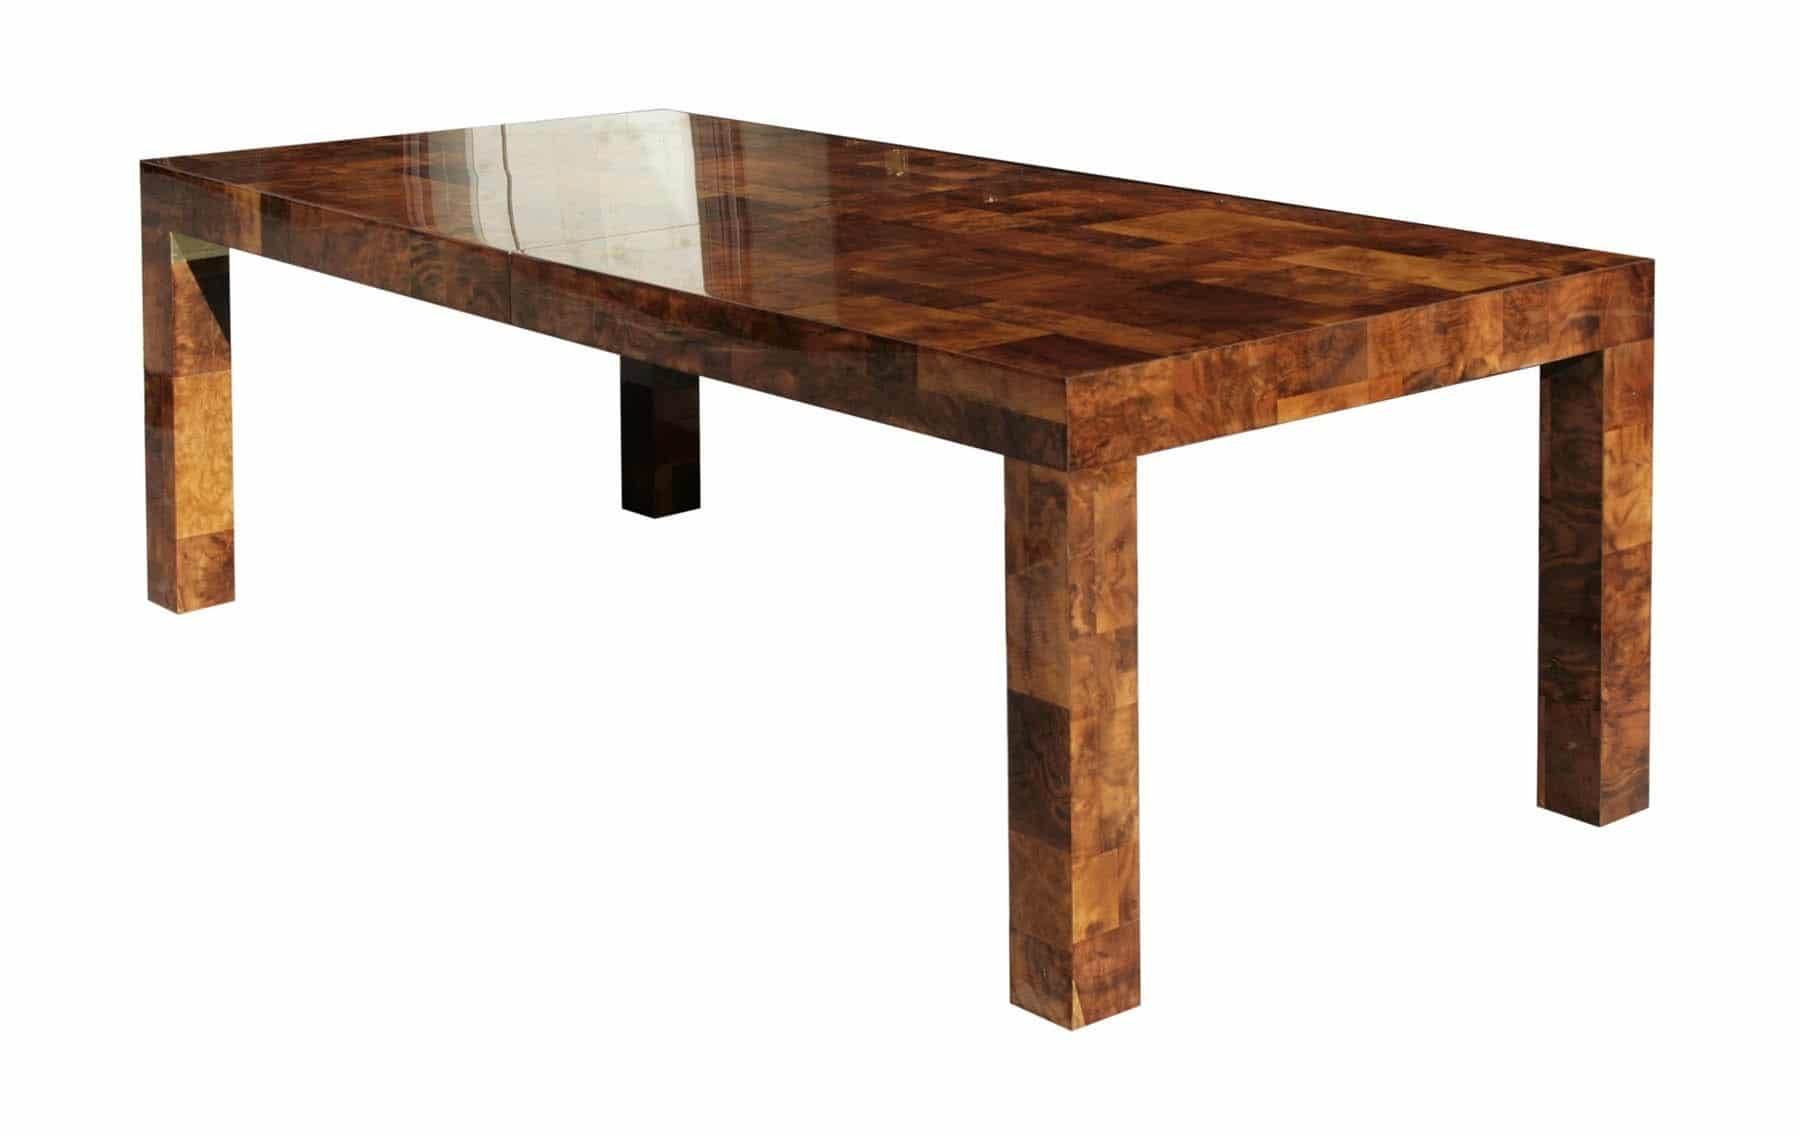 Paul Evans Dining Table in Walnut Burl Todd Merrill Studio : Paul Evans Dining Table in Walnut Burl 2 from toddmerrillstudio.com size 1800 x 1134 jpeg 246kB